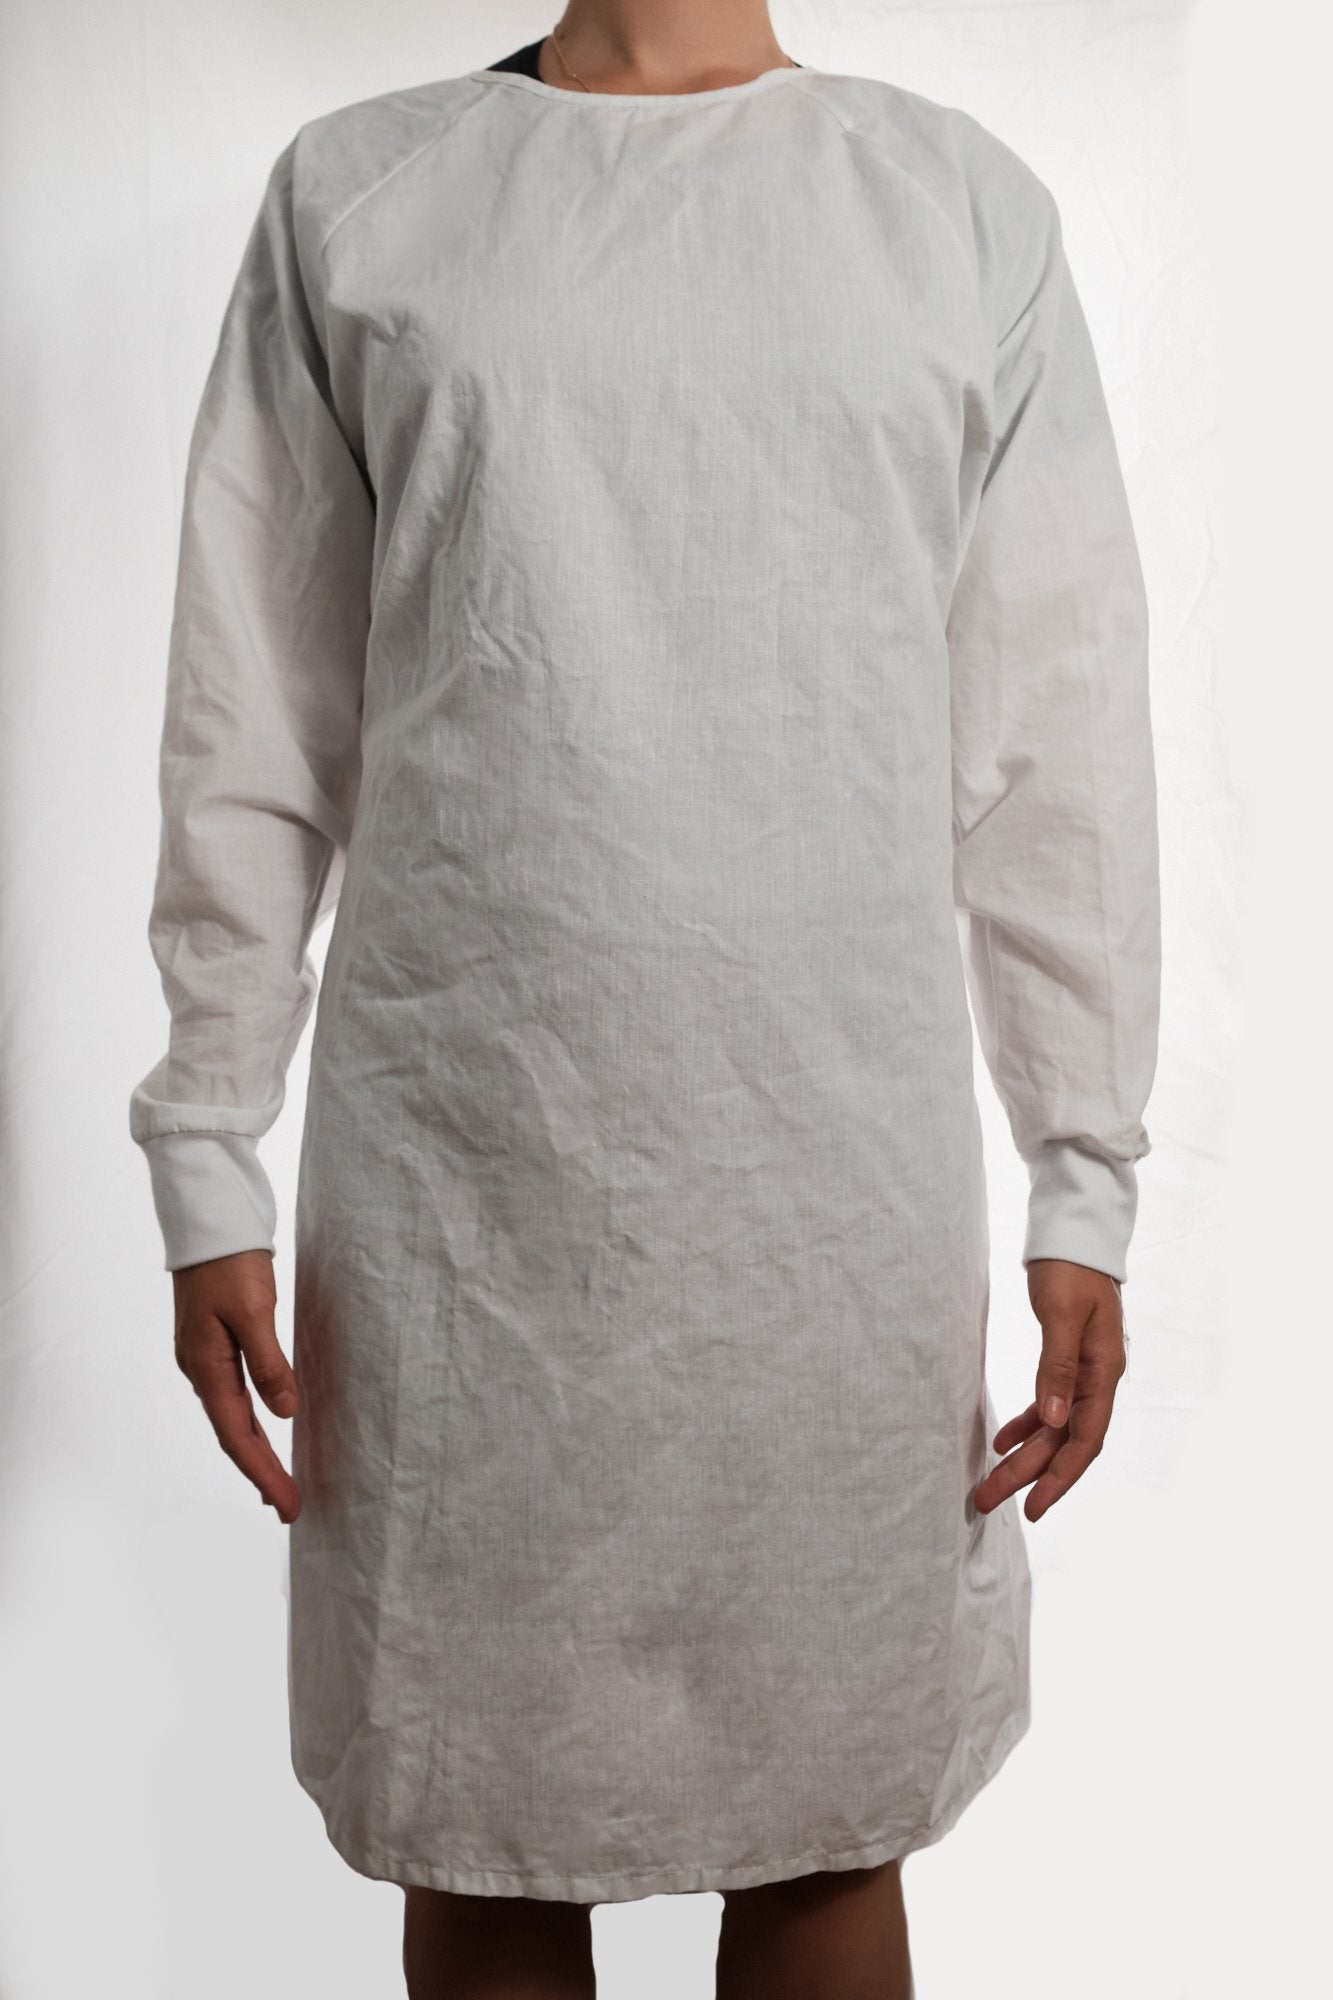 Isolation gown - WHITE- re-usable - cotton / poly mix - free shipping - FDA Level 2 - Brooklyn Equipment